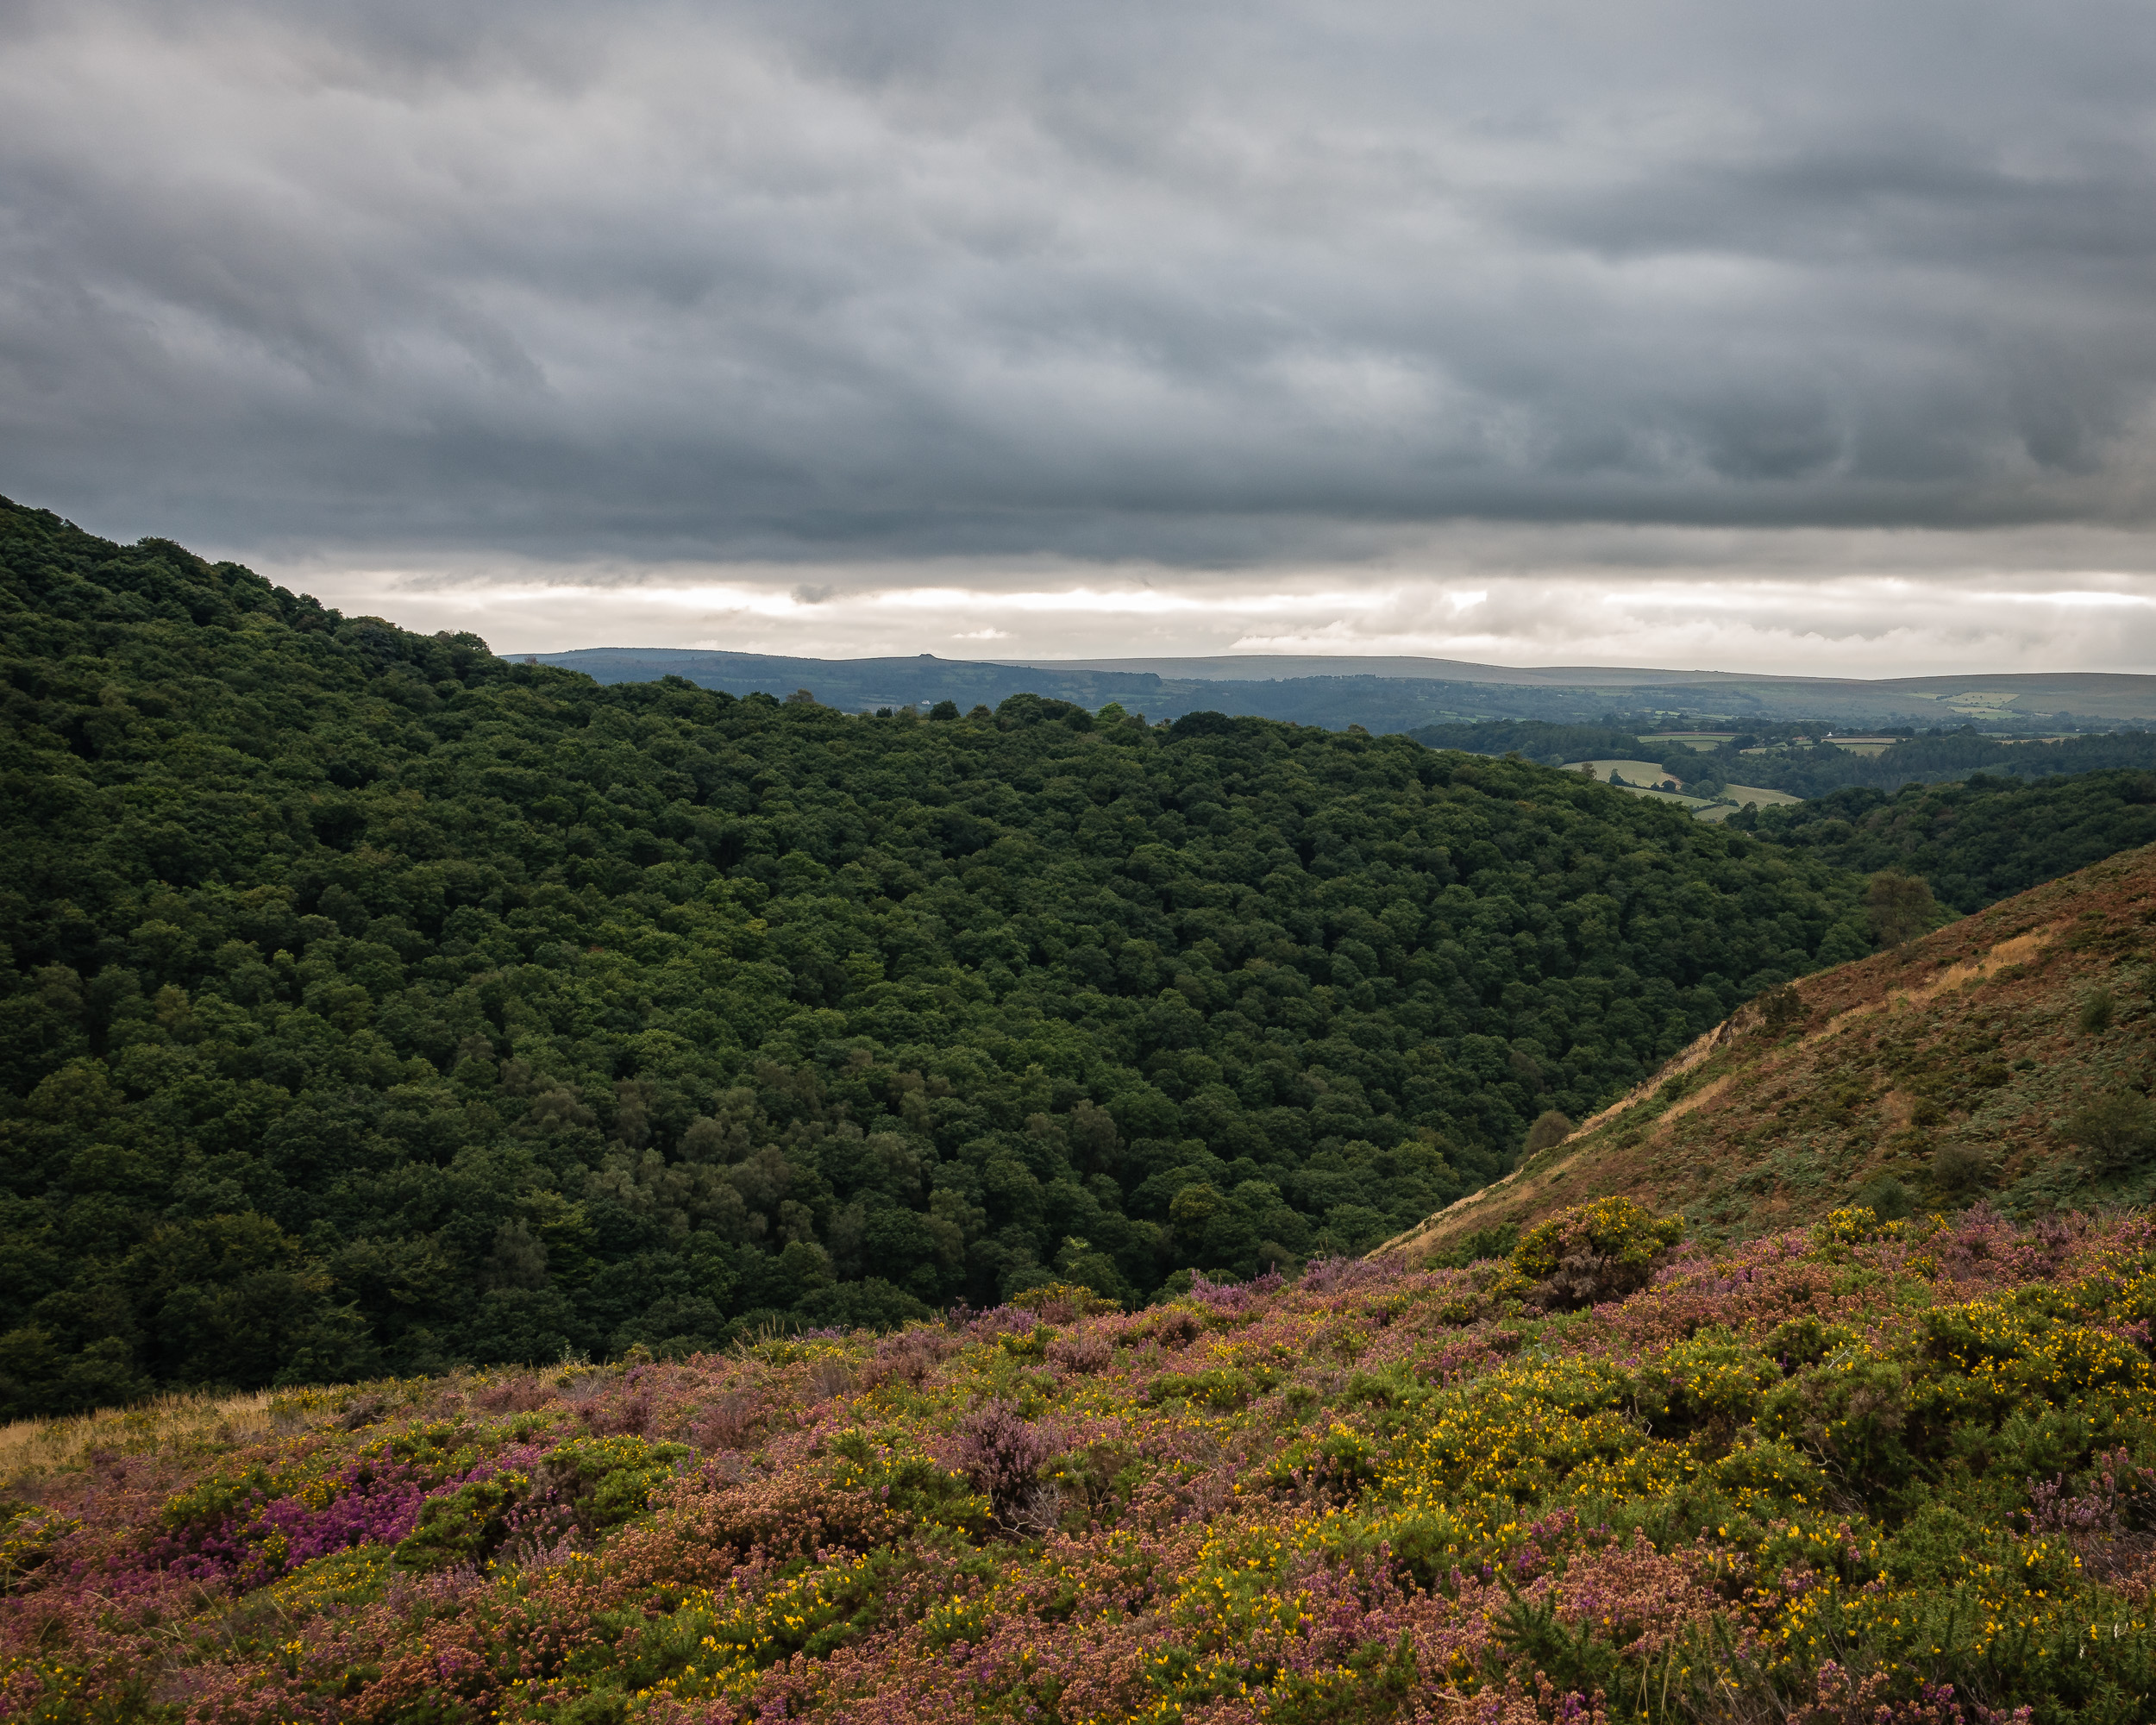 Teign Valley Looking West